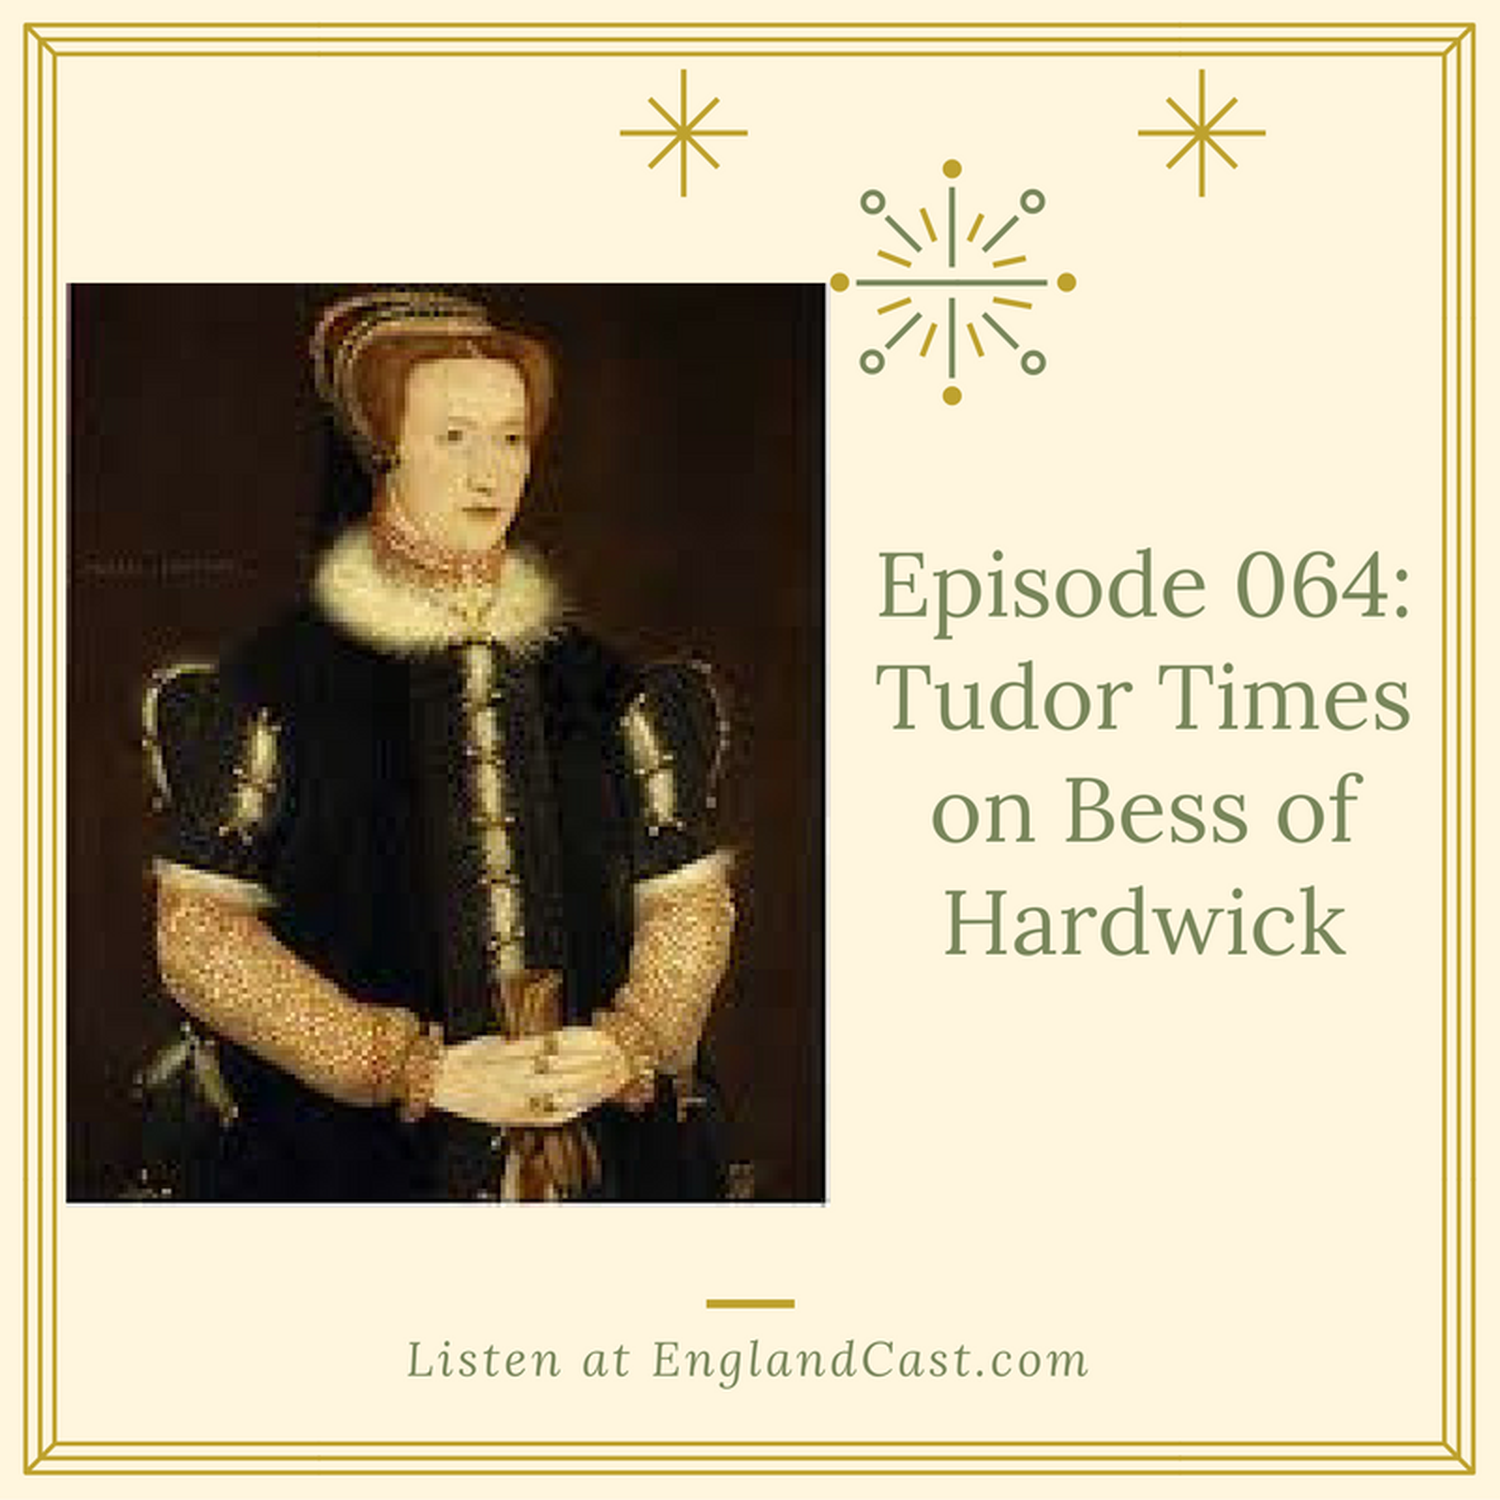 Episode 064: Tudor Times on Bess of Hardwick